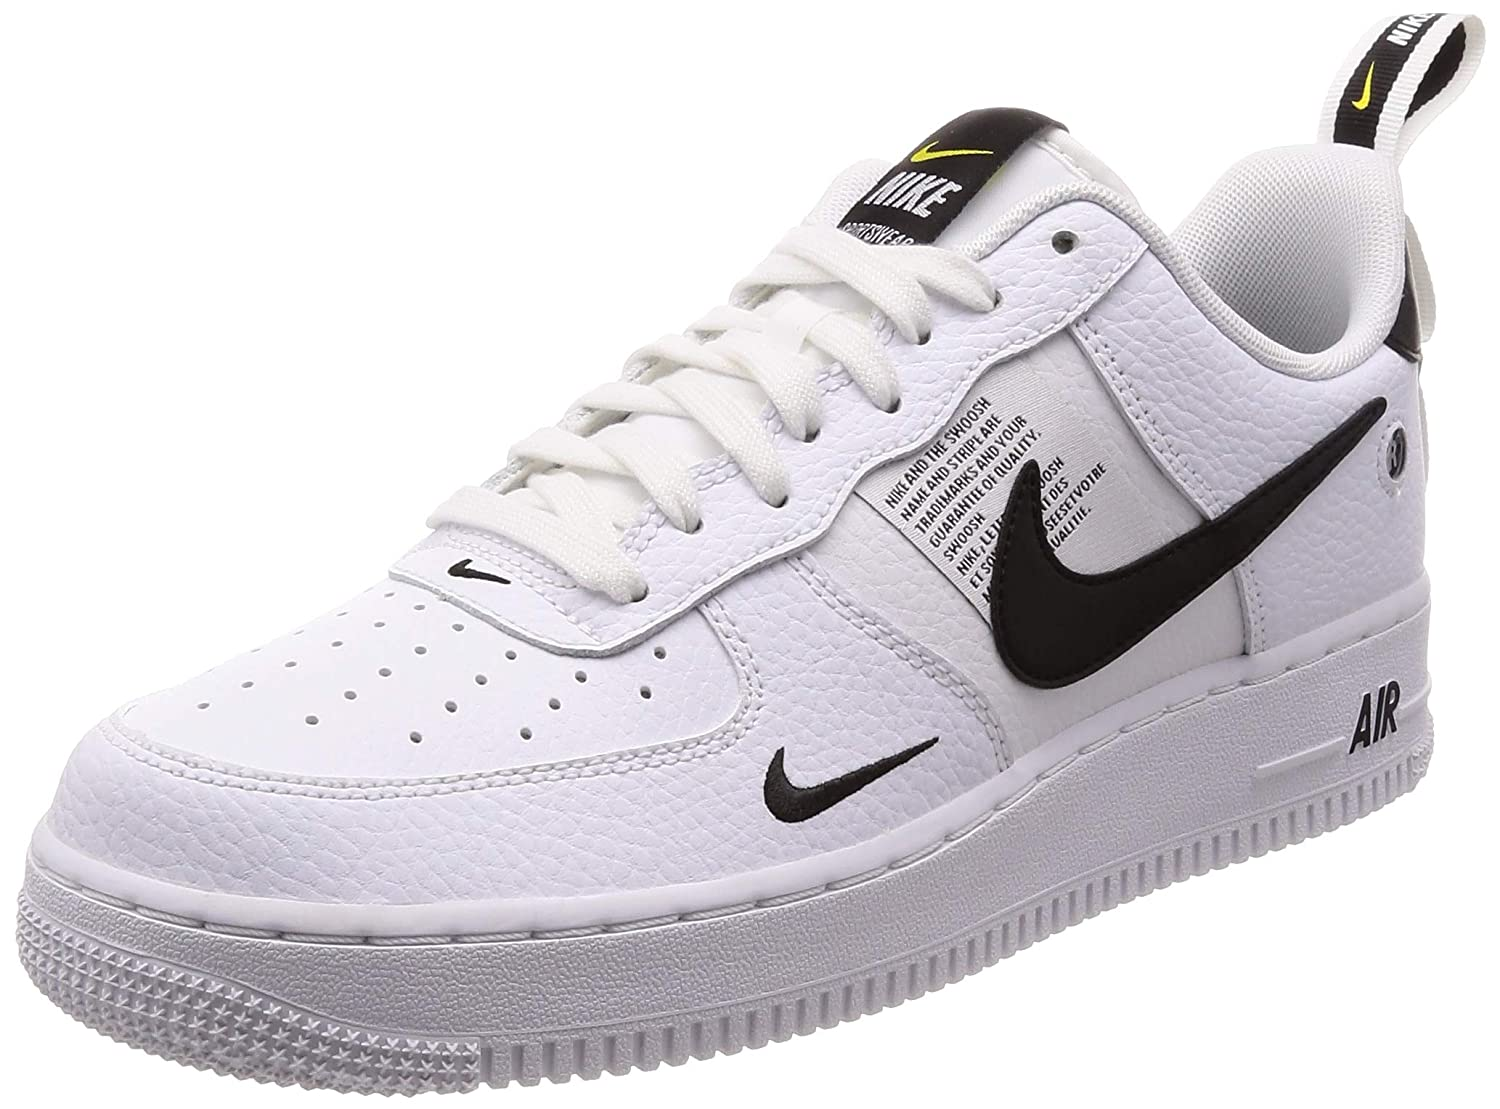 outlet store 94d14 d3288 Nike Mens Air Force 1 07 LV8 Utility, WhiteWhite-Black-Tour Yellow, 18 M  US Amazon.com.au Fashion